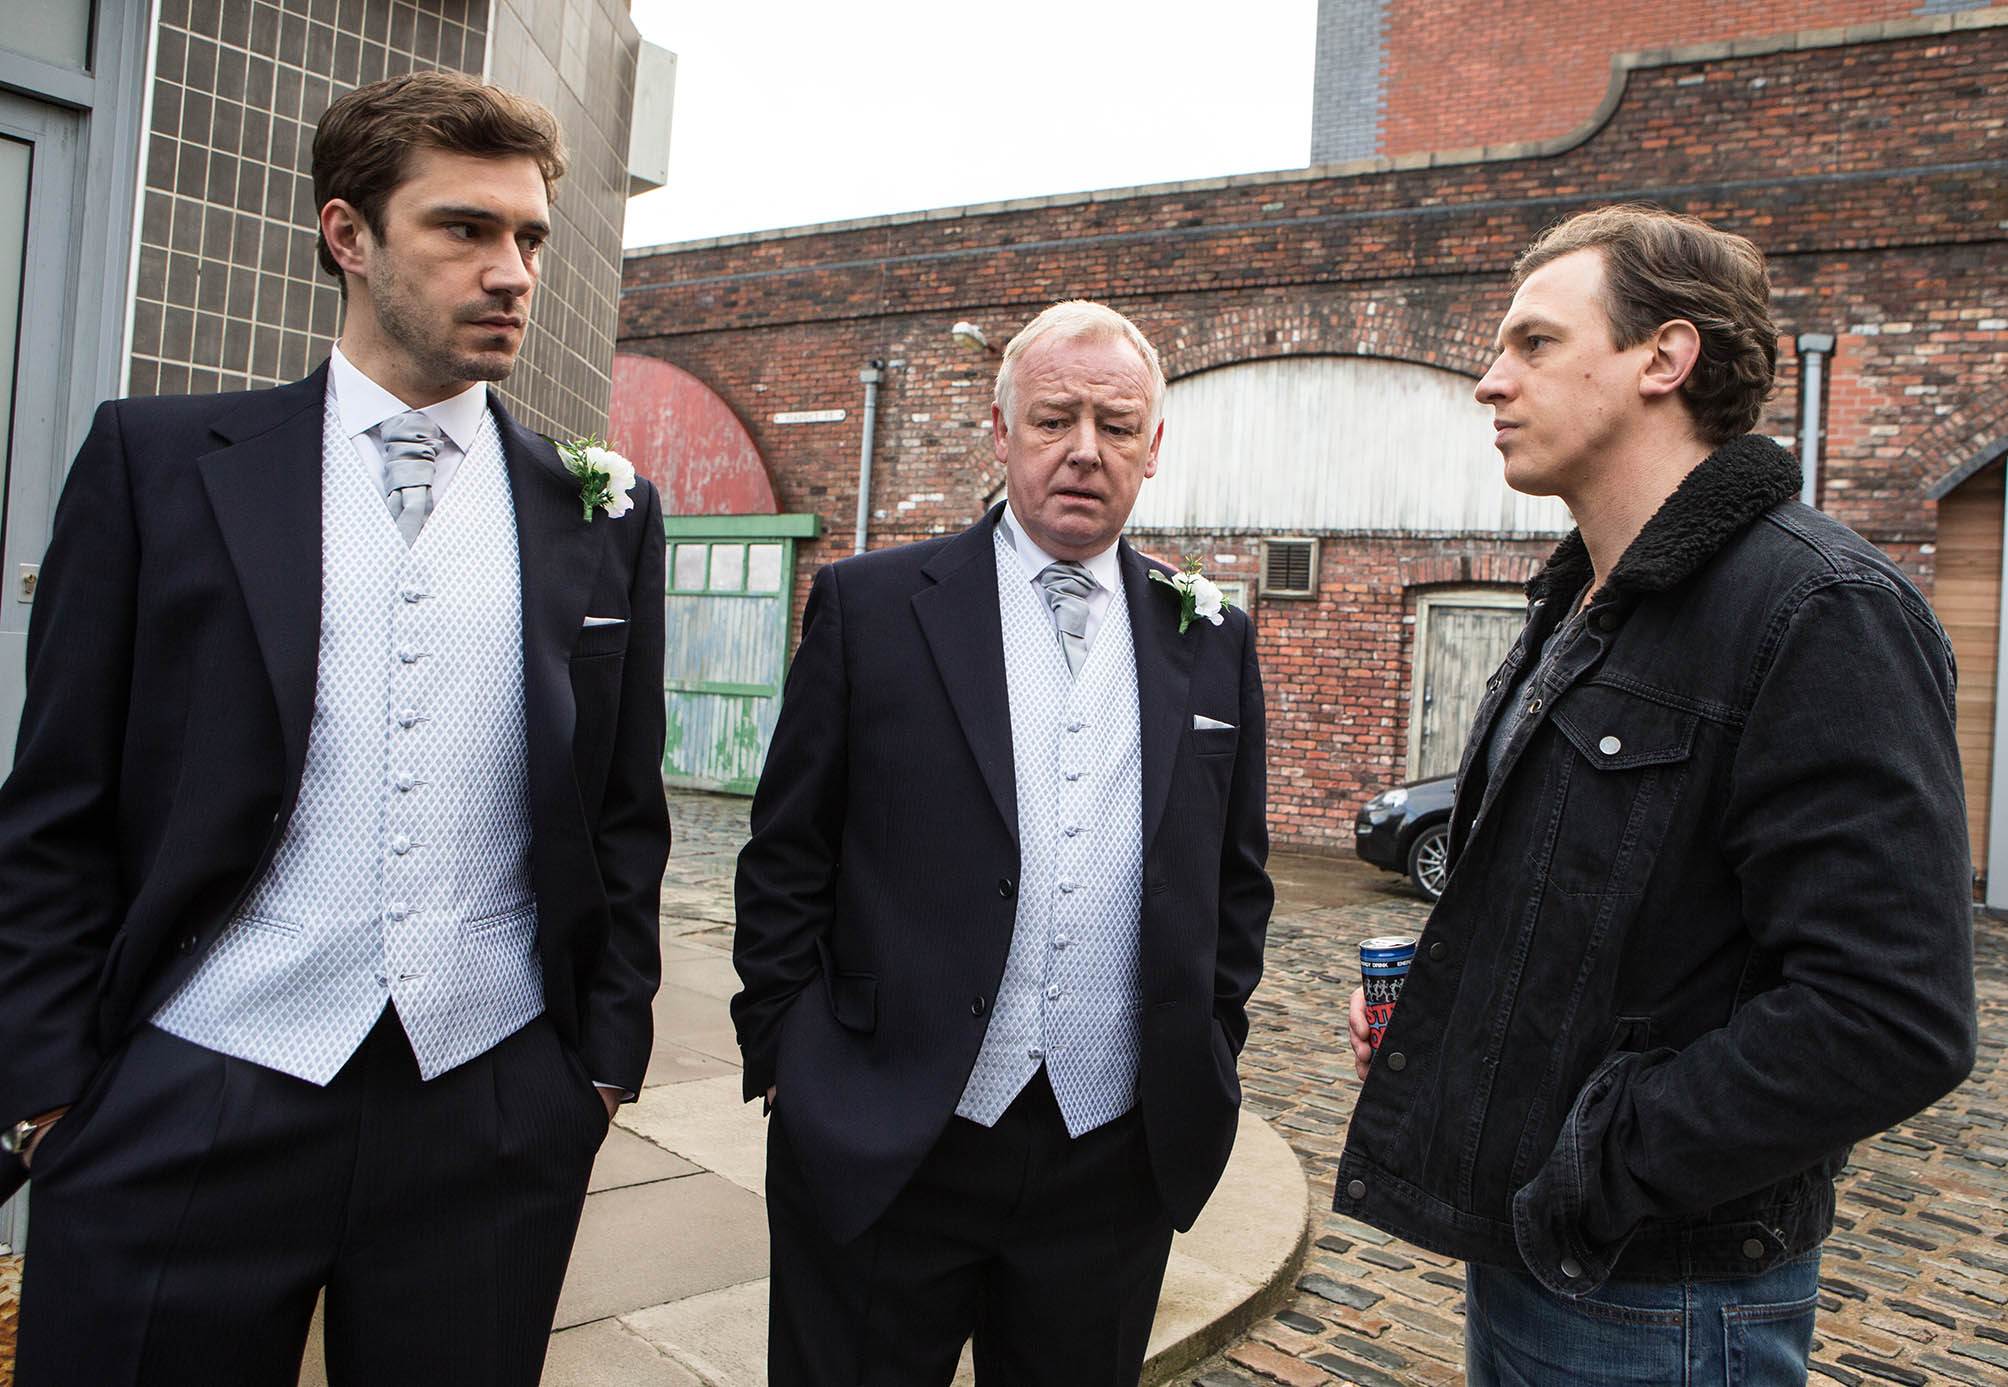 Editorial use only Mandatory Credit: Photo by ITV/REX/Shutterstock (8965186g) Ep 8592 Monday 9 March 2015 - 1st Ep Andy, as played by Oliver Farnworth, a bag of nerves, feeling guilty about the fake mugging. Gavin Rodwell, as played by Mark Holgate, clocks Michael Rodwell, as played by Les Dennis, and Andy dressed for the service. Michael proudly explains that his son is his best man. Gavin's scathing and tells Michael that if he were his son, he'd despise him and never forgive him. 'Coronation Street' TV Series - Mar 2015